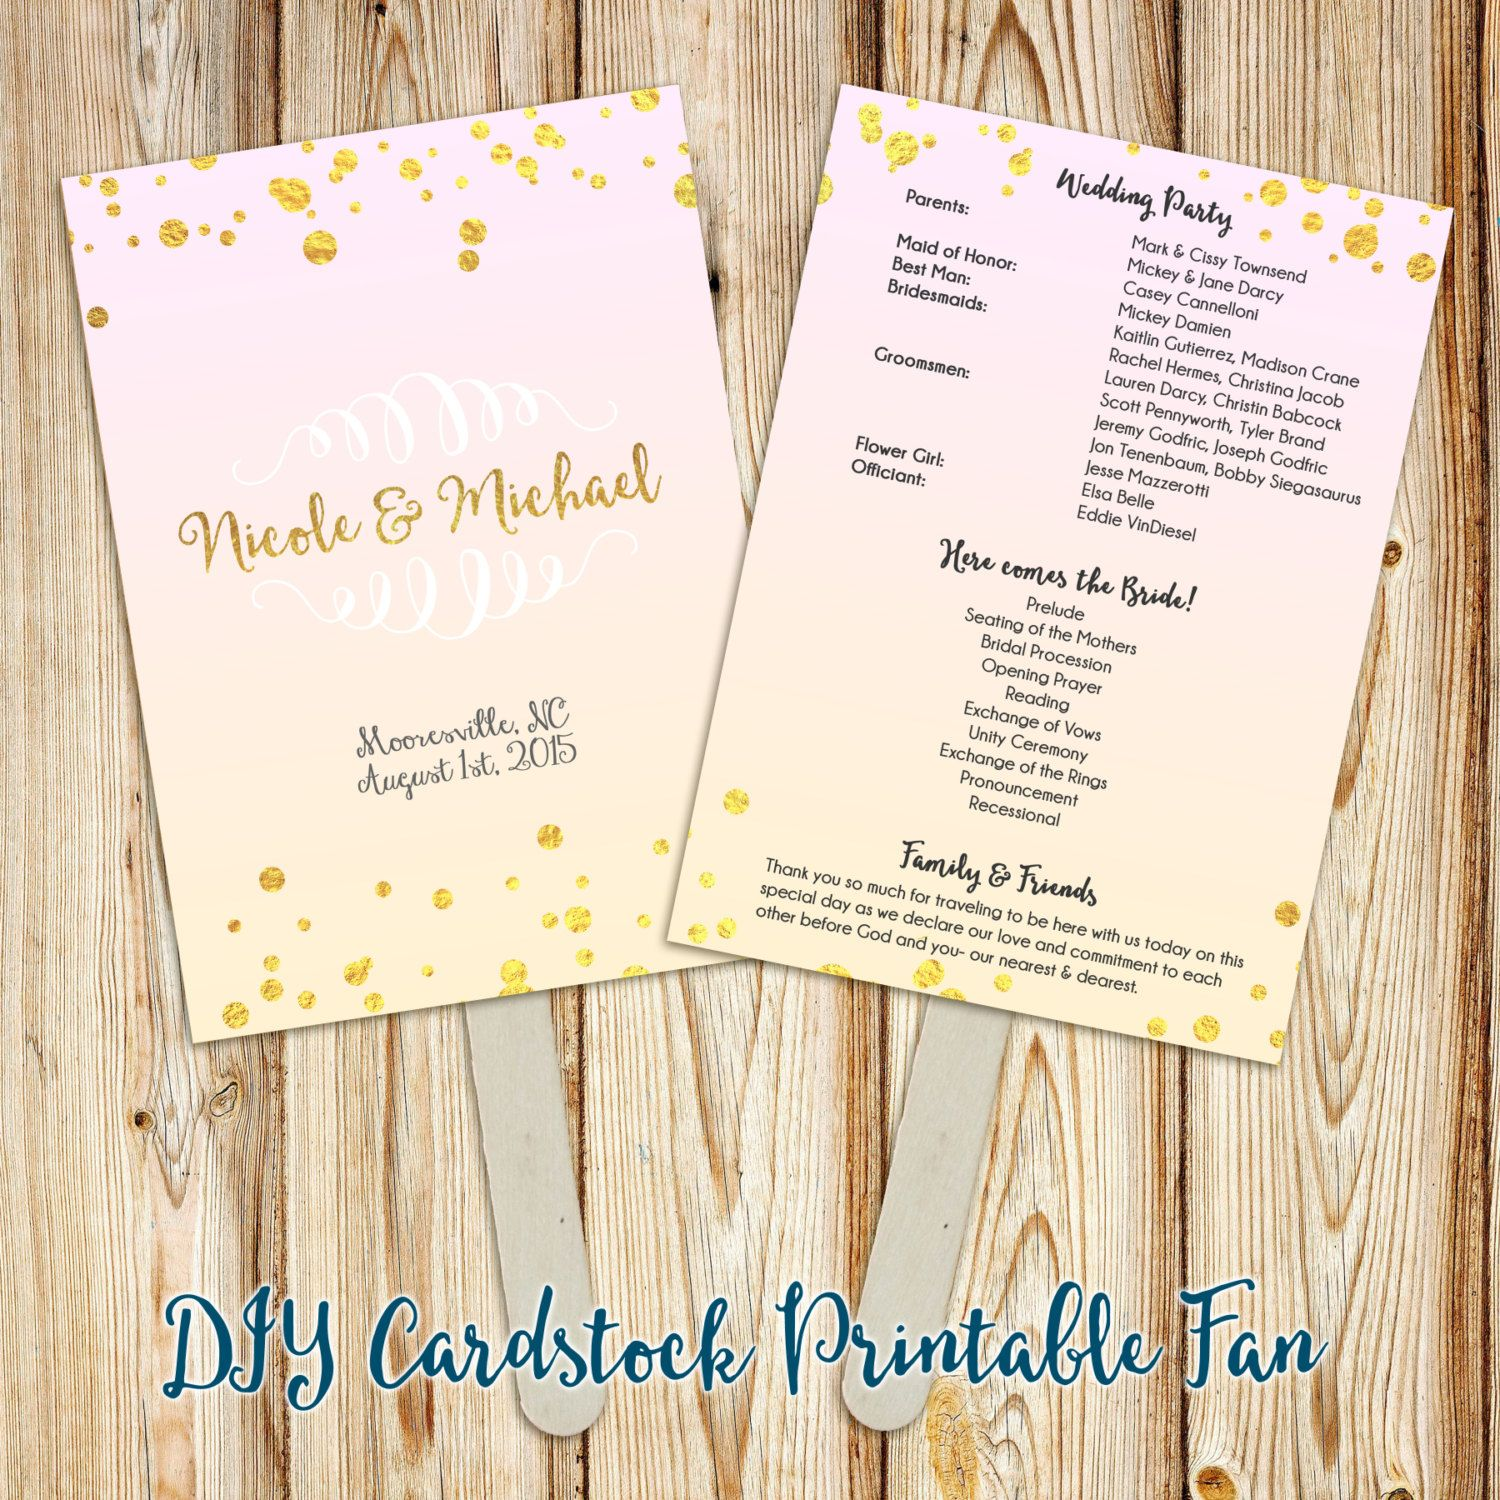 Printable Wedding Program Fan or Doublesided Program Fan Faux Gold